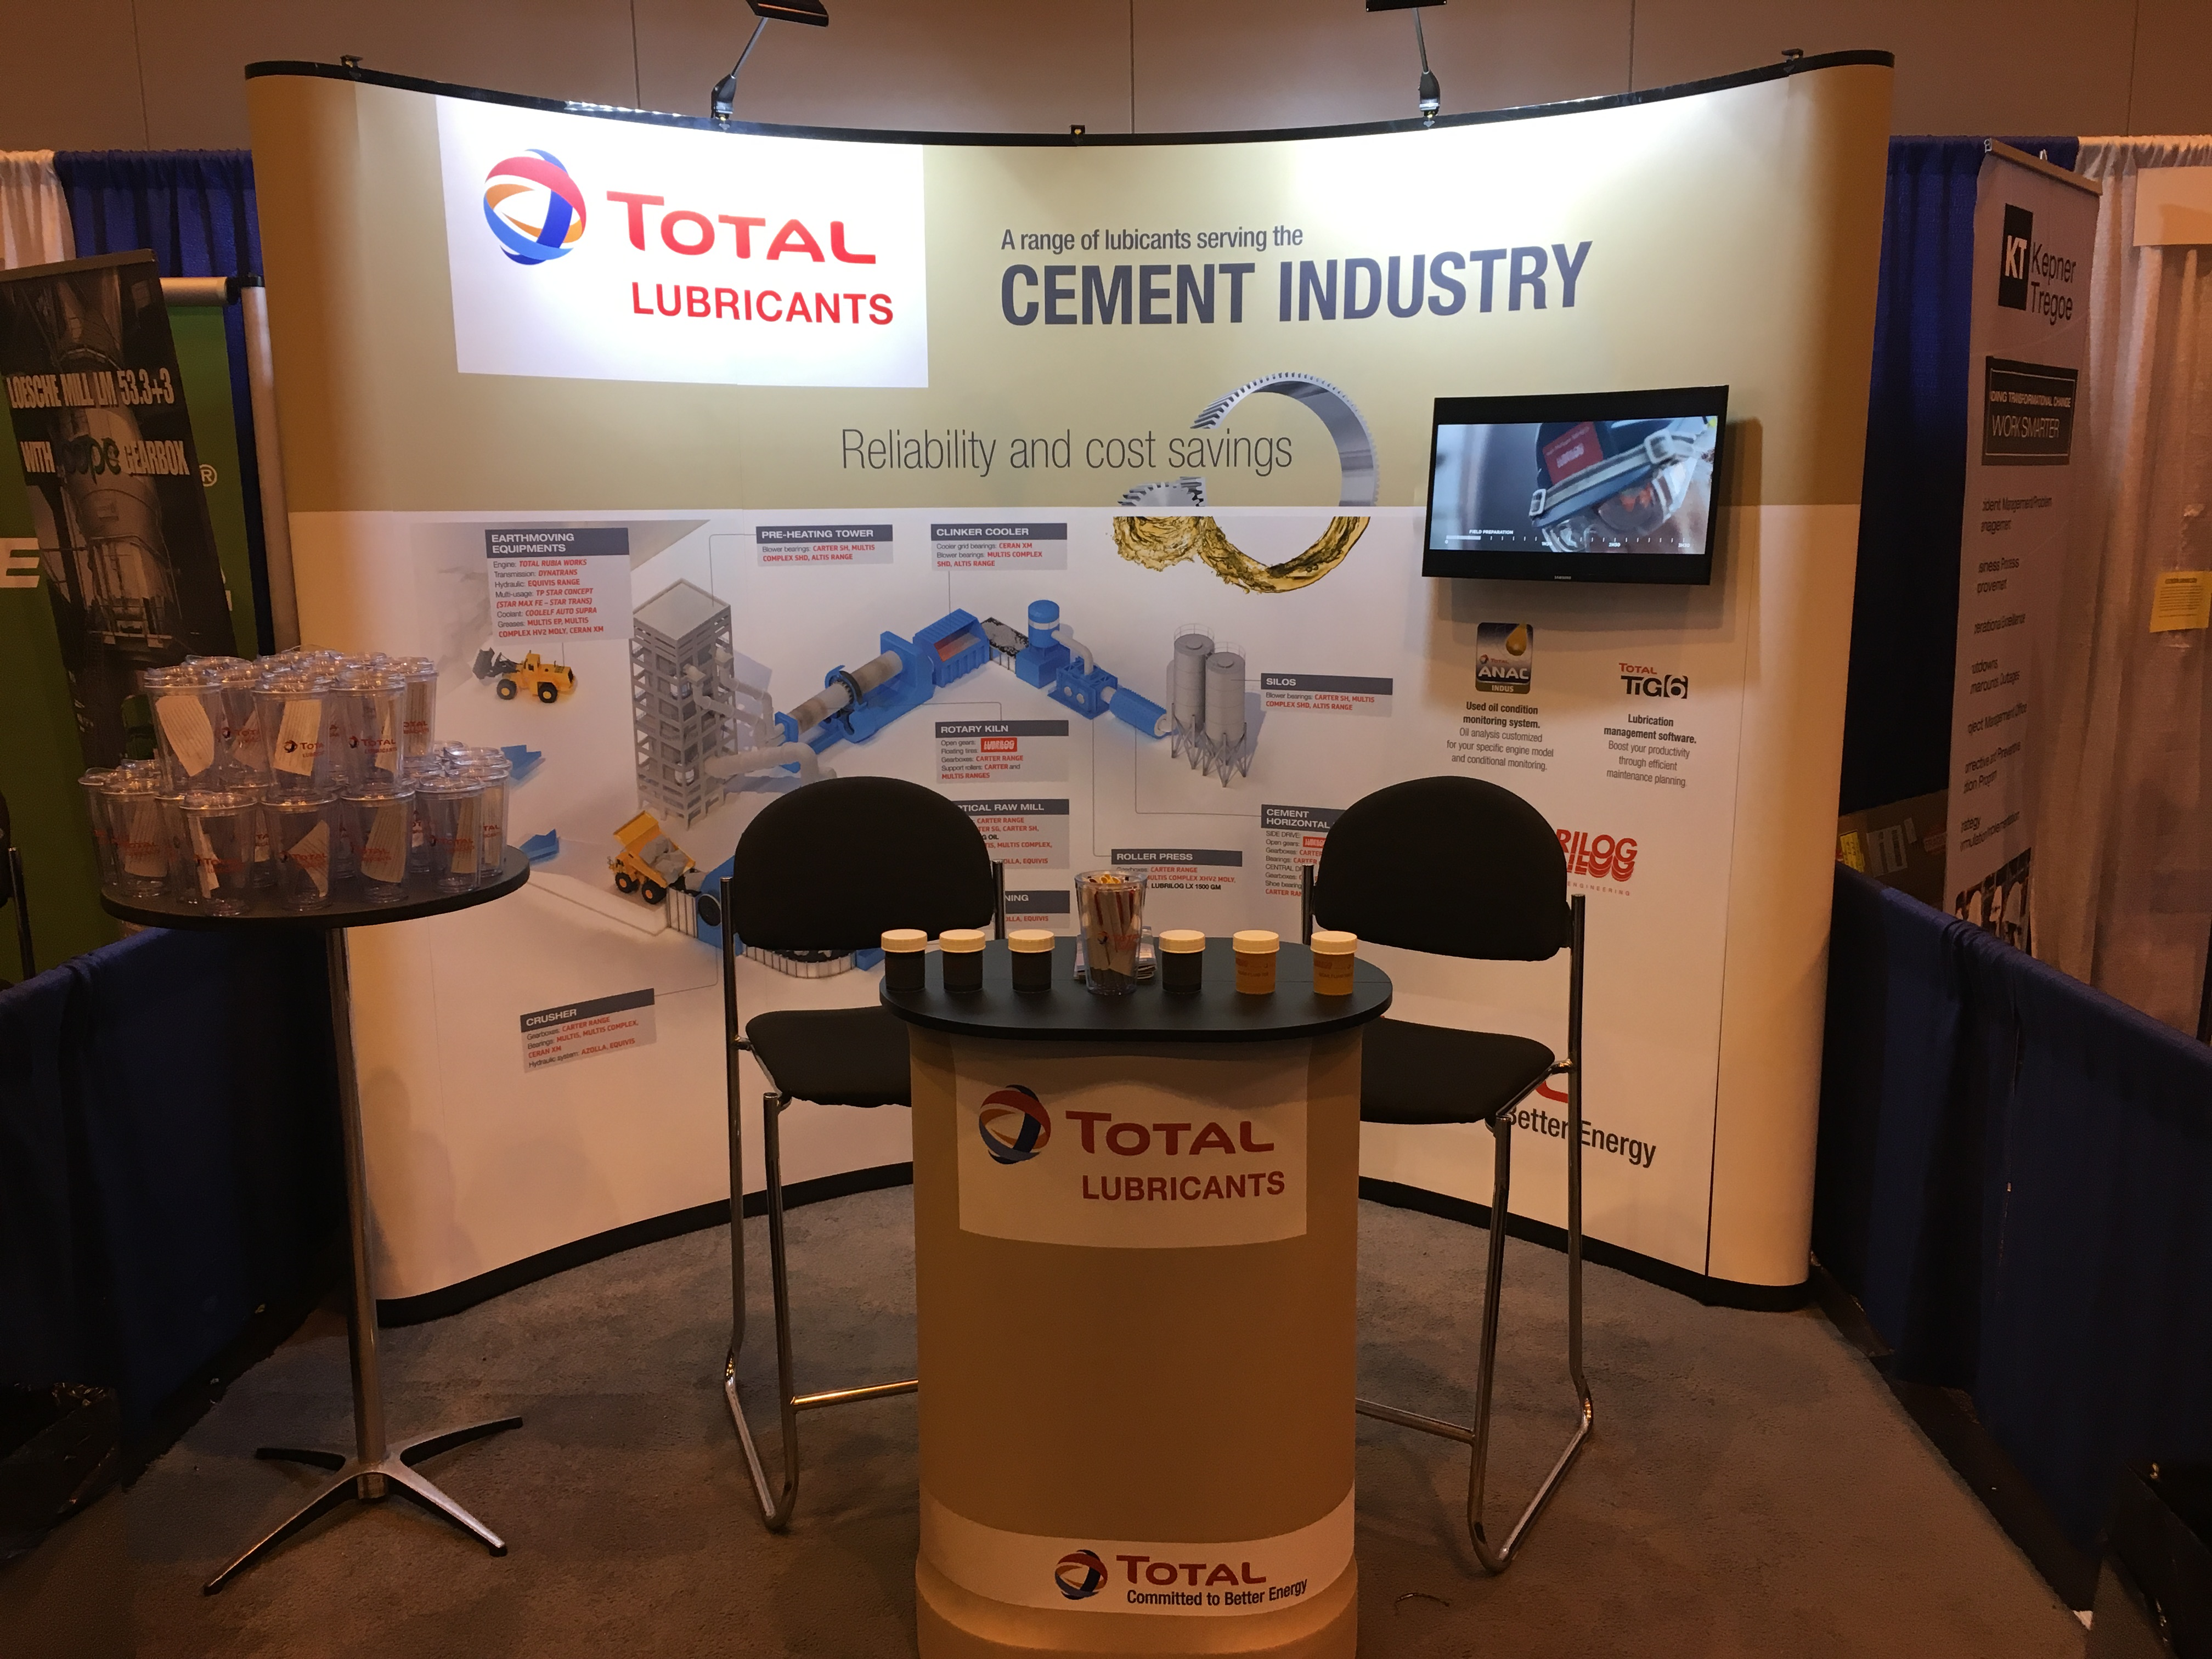 Cement Industry stand